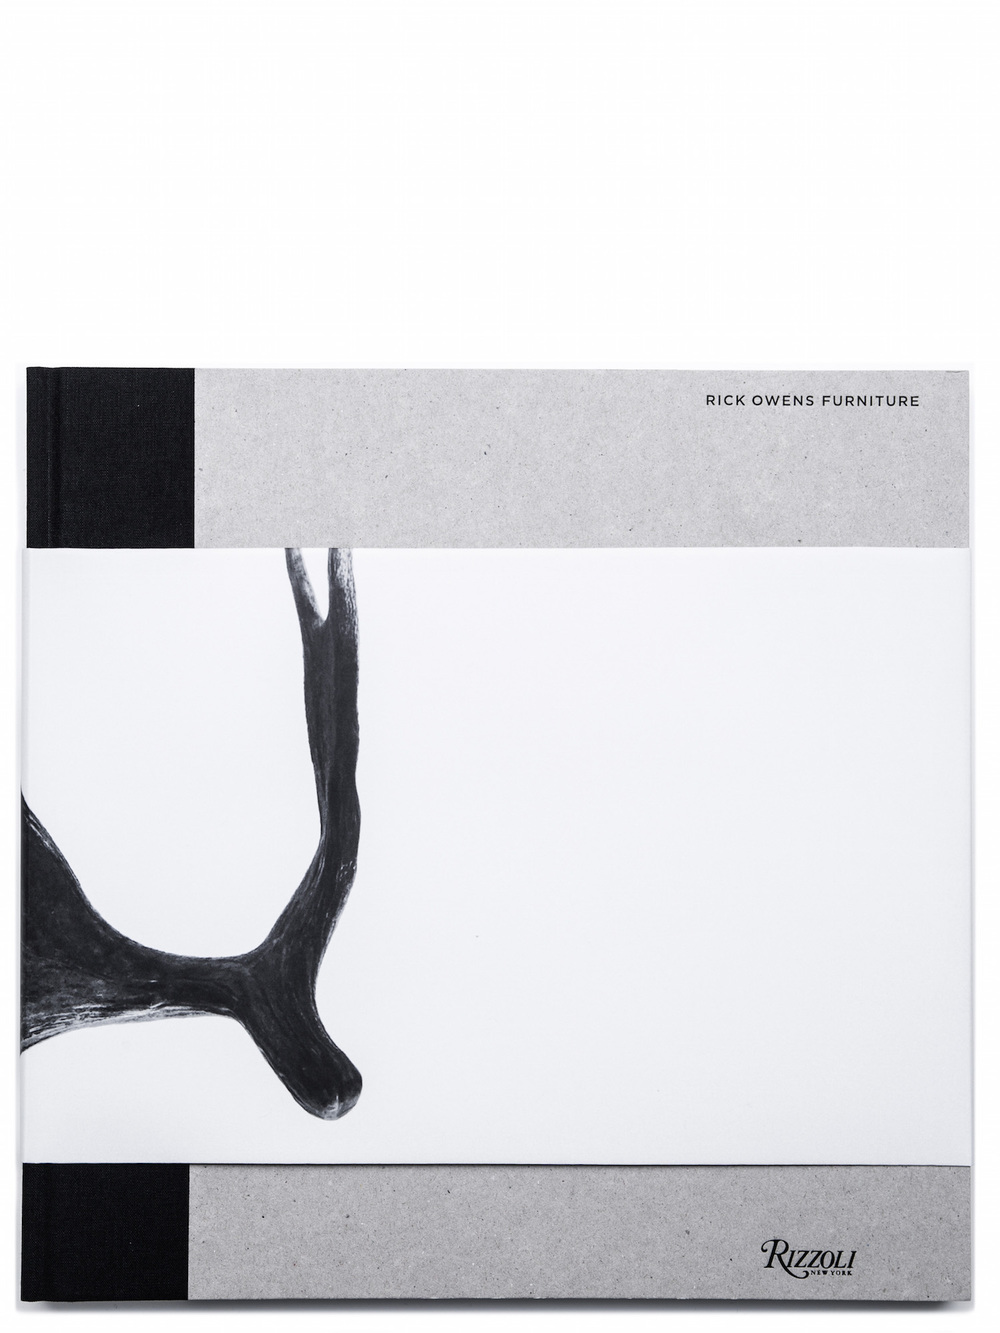 RICK OWENS FURNITURE BOOK